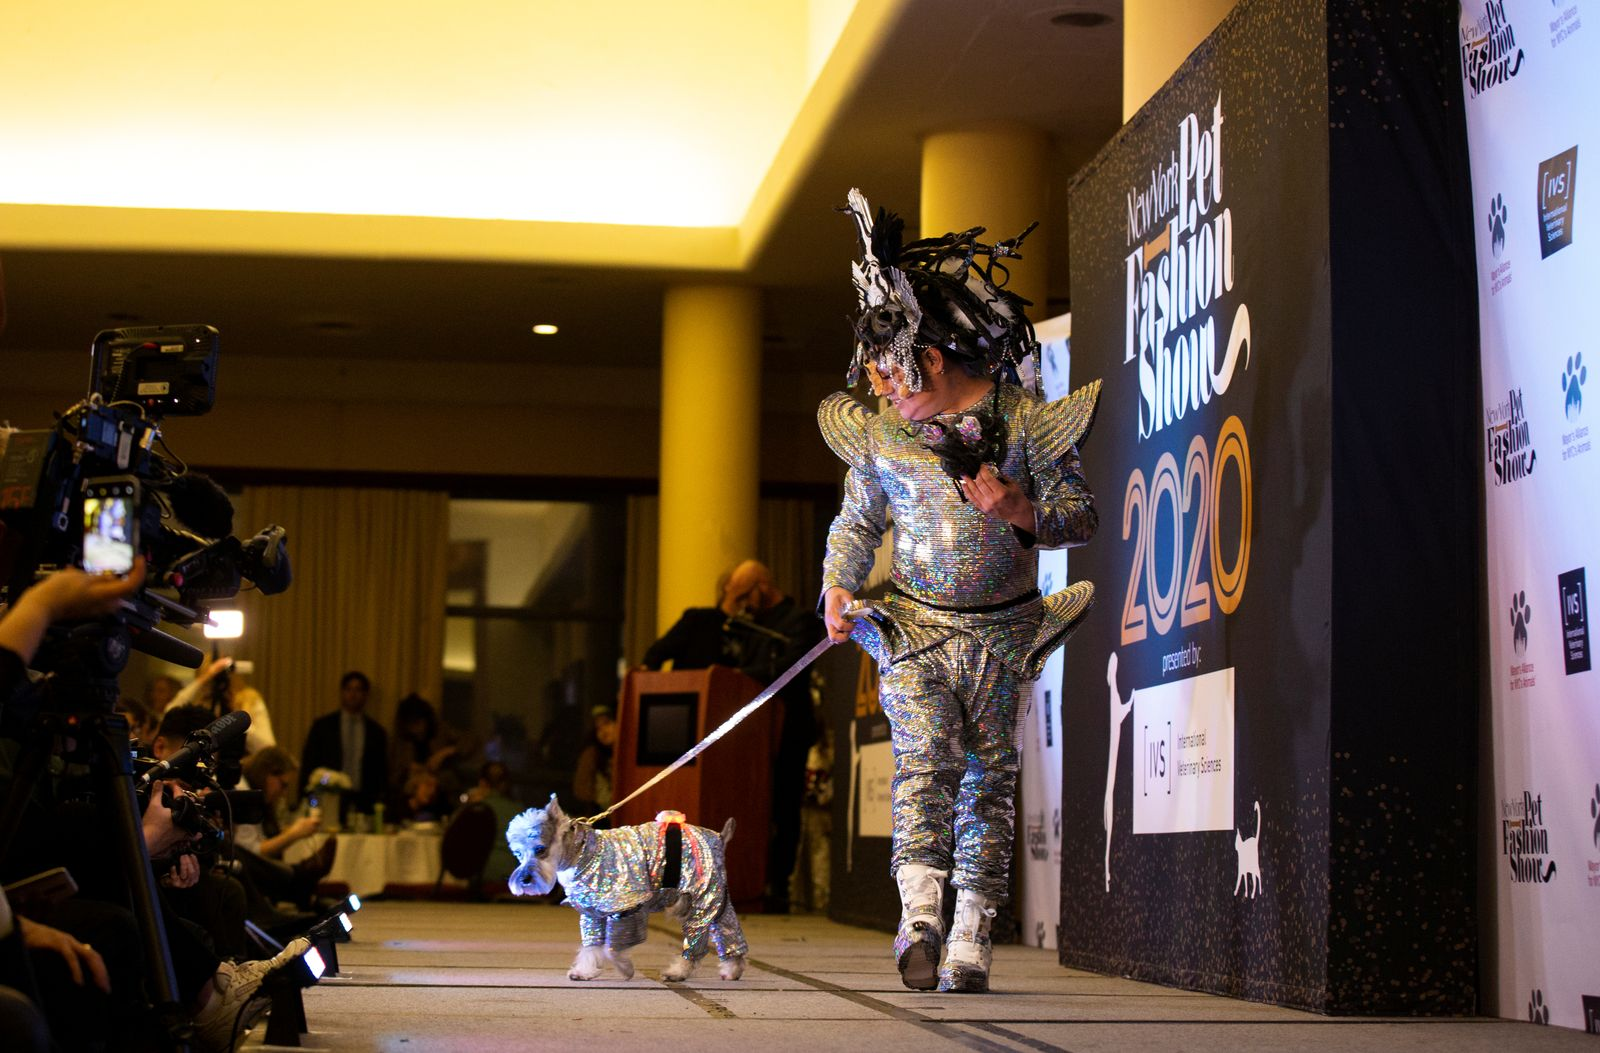 A man walks a dog across the runway stage at the 17th annual New York Pet Fashion Show